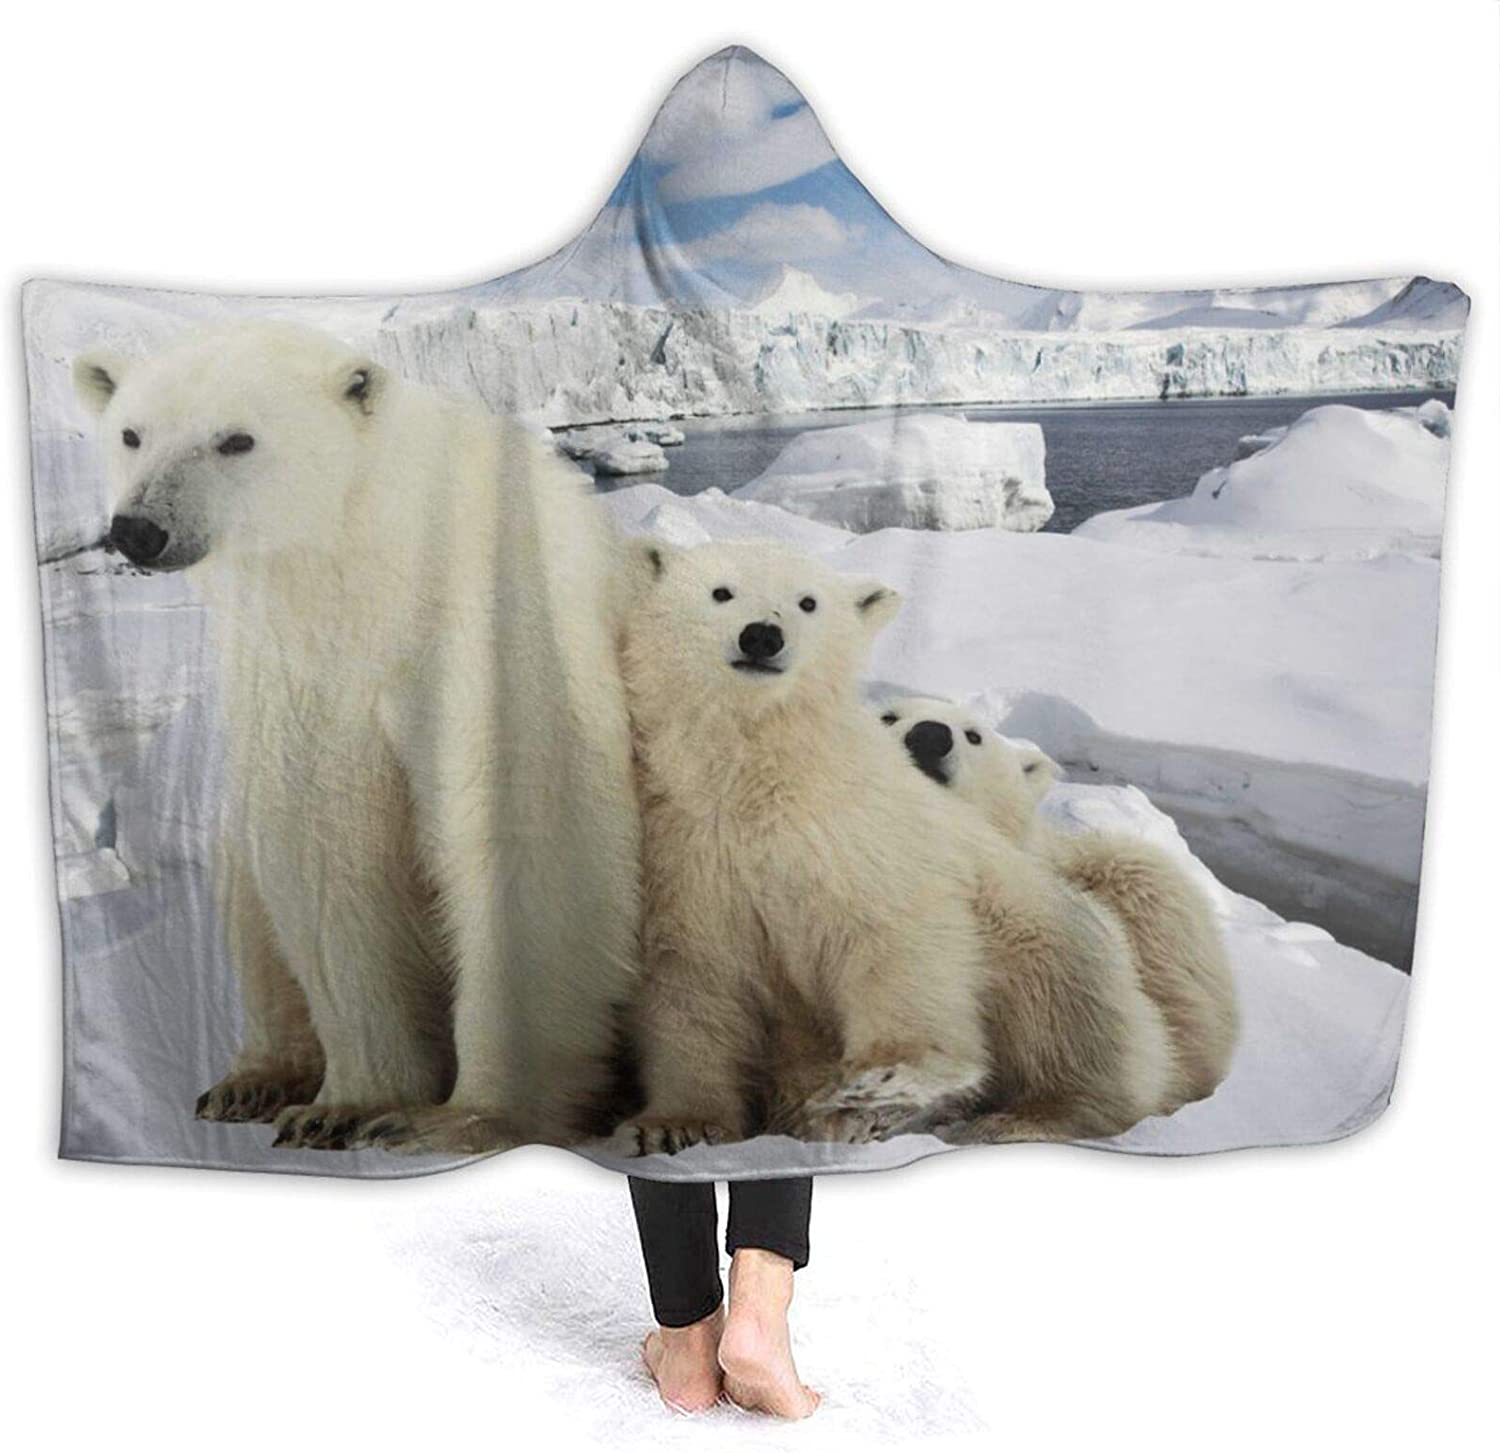 Minalo Wearable Hooded Blanket Plush National products wit Chicago Mall The Polar She-Bear Wrap